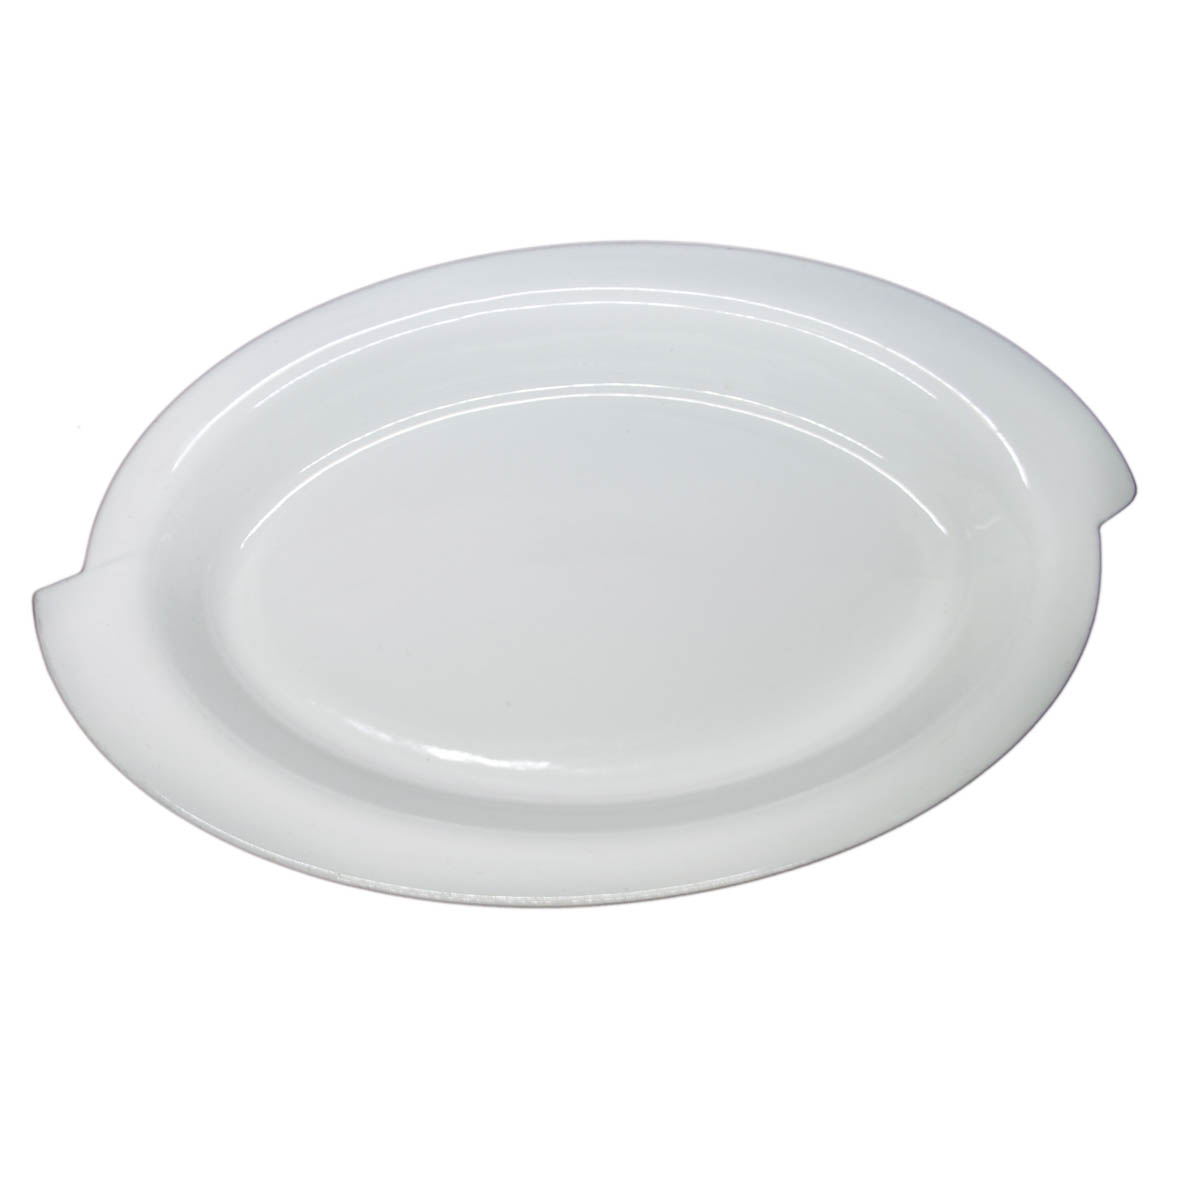 Travessa de Porcelana Oval Borda S 51x33x7